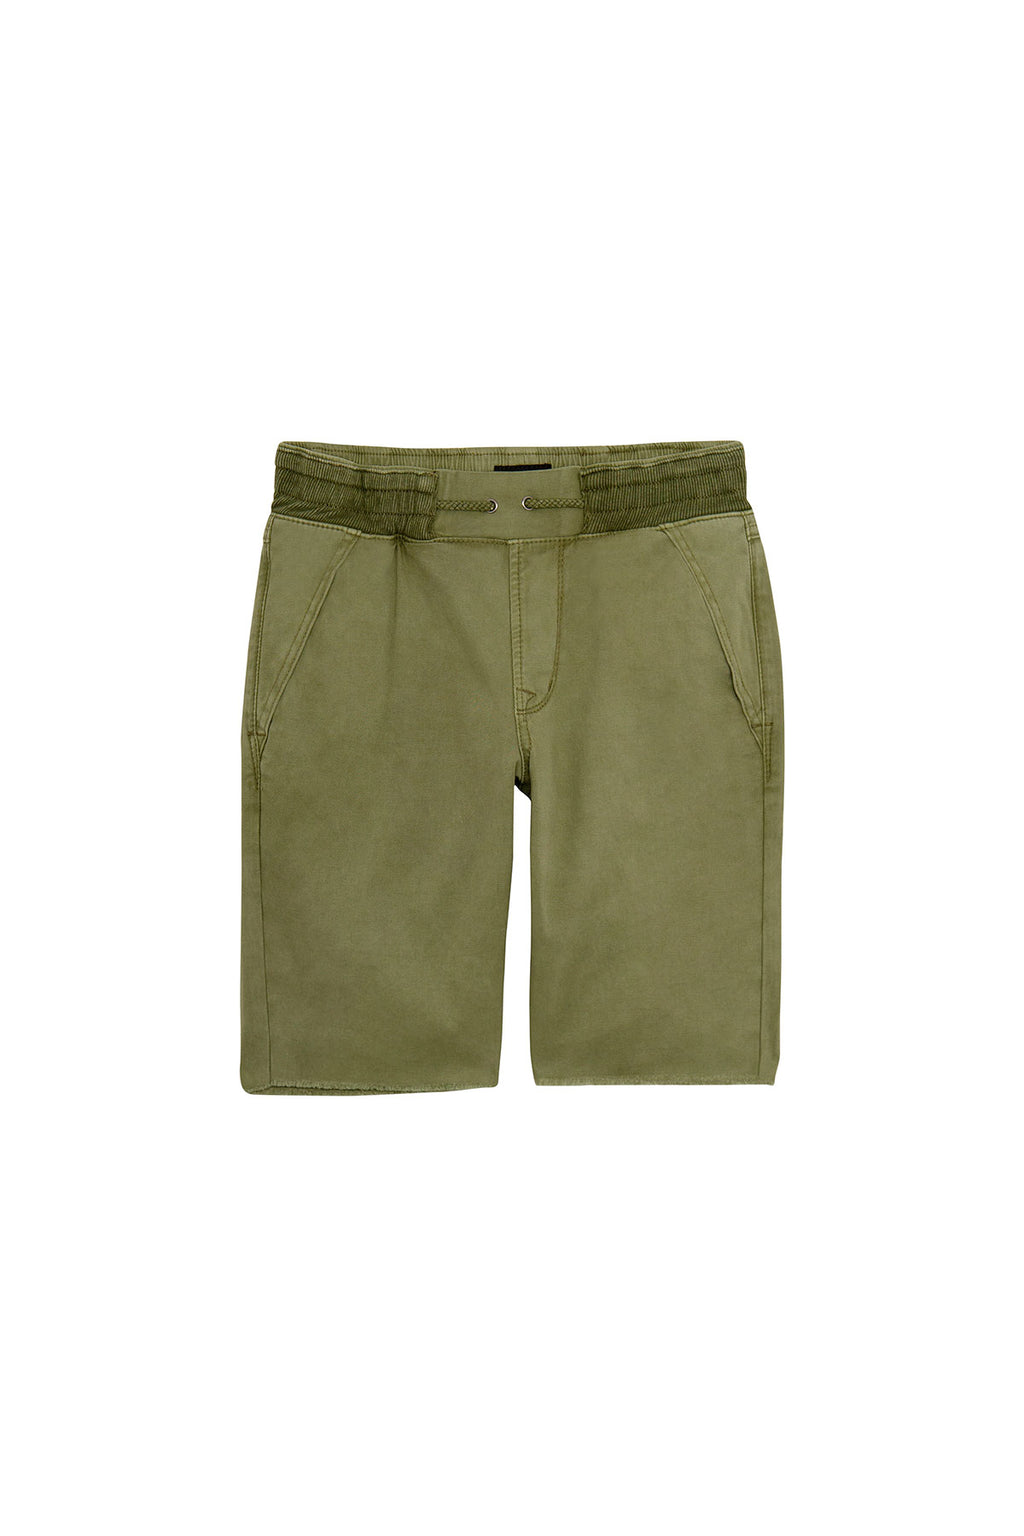 BOYS SHAW SHORT, SIZES 8-20 - MOSS - Image 2